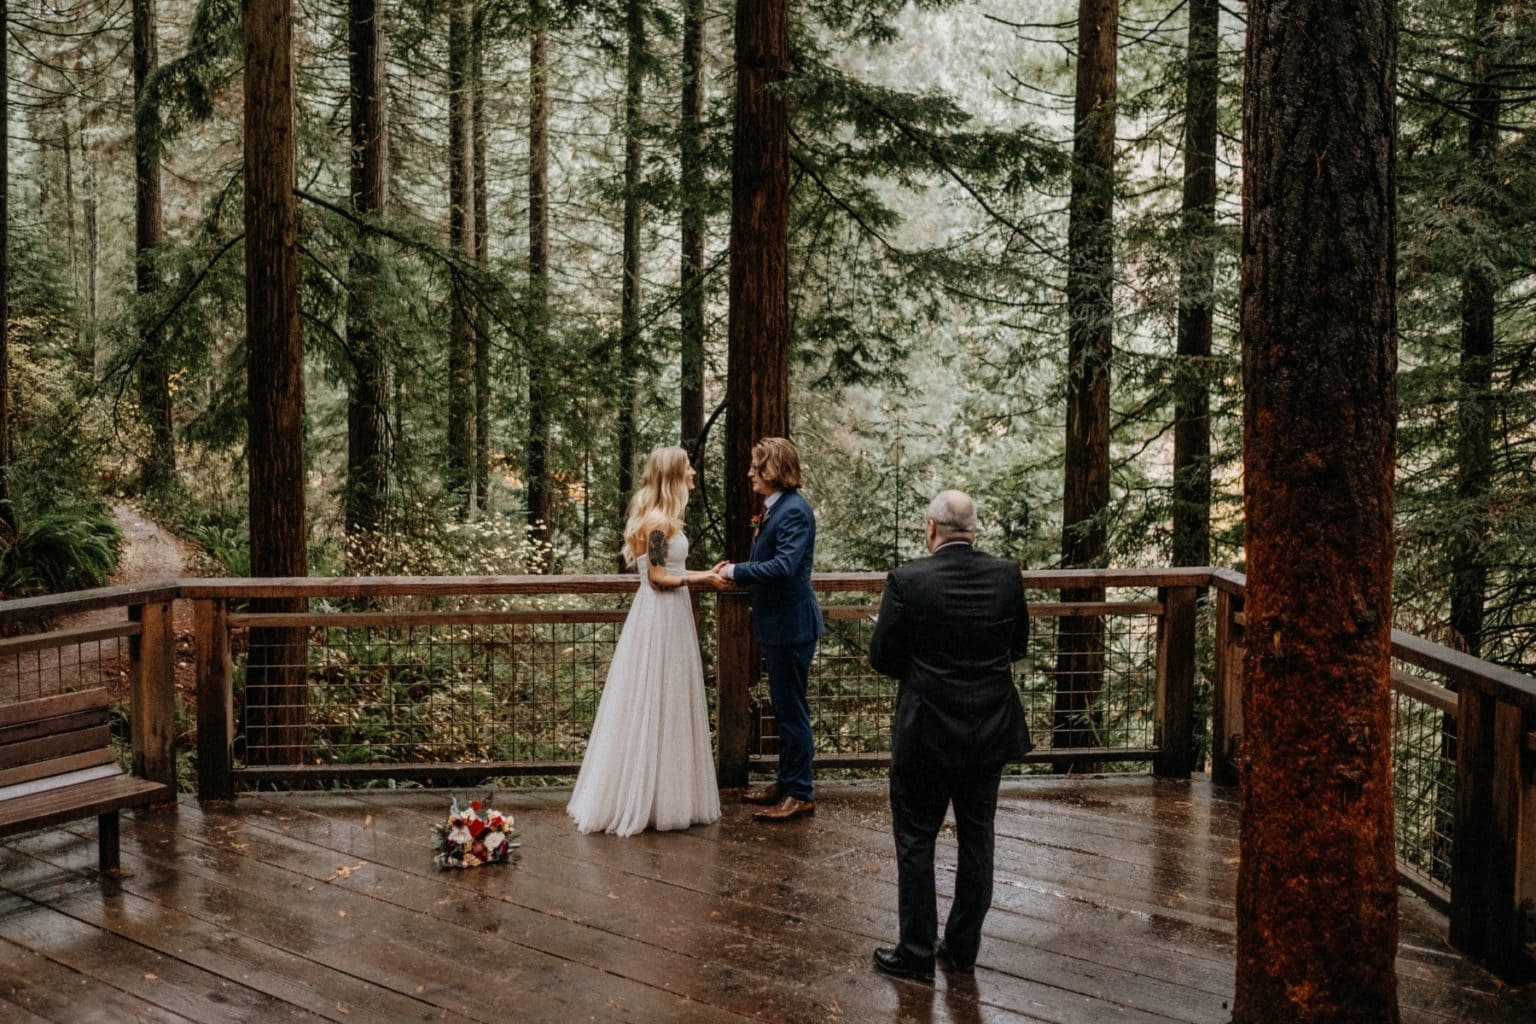 redwood deck wedding venue in portland oregon